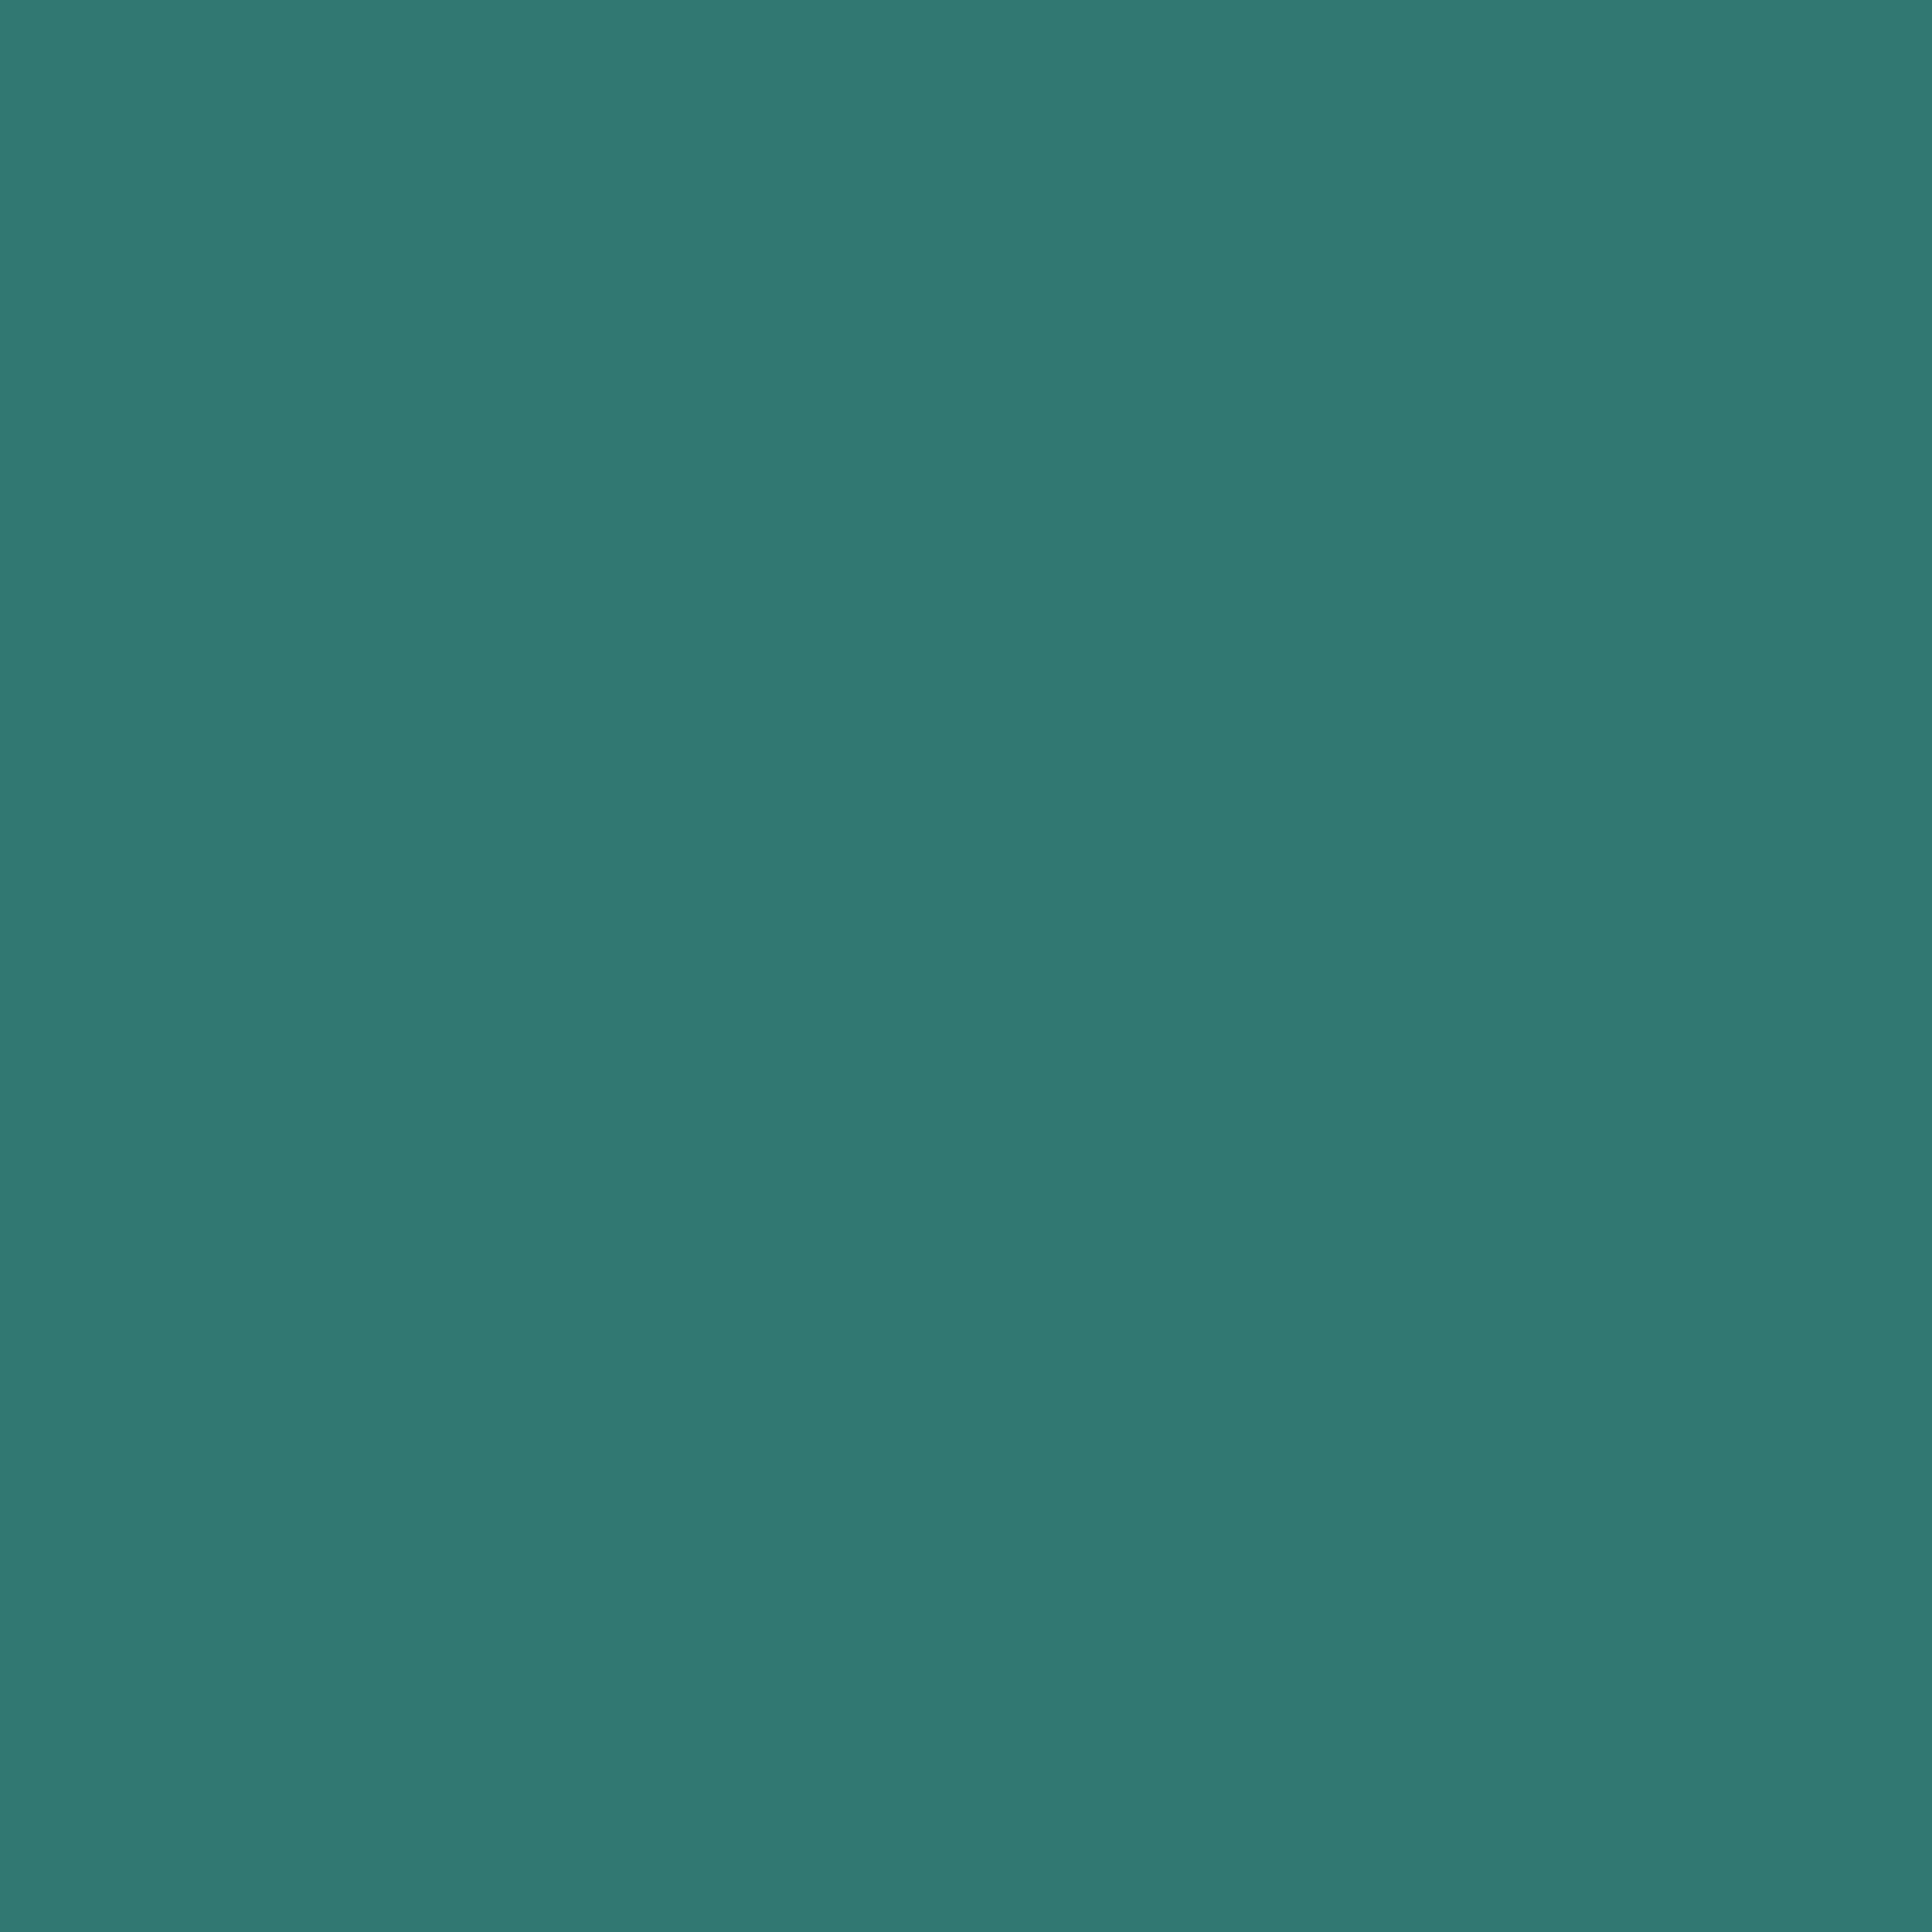 2732x2732 Myrtle Green Solid Color Background